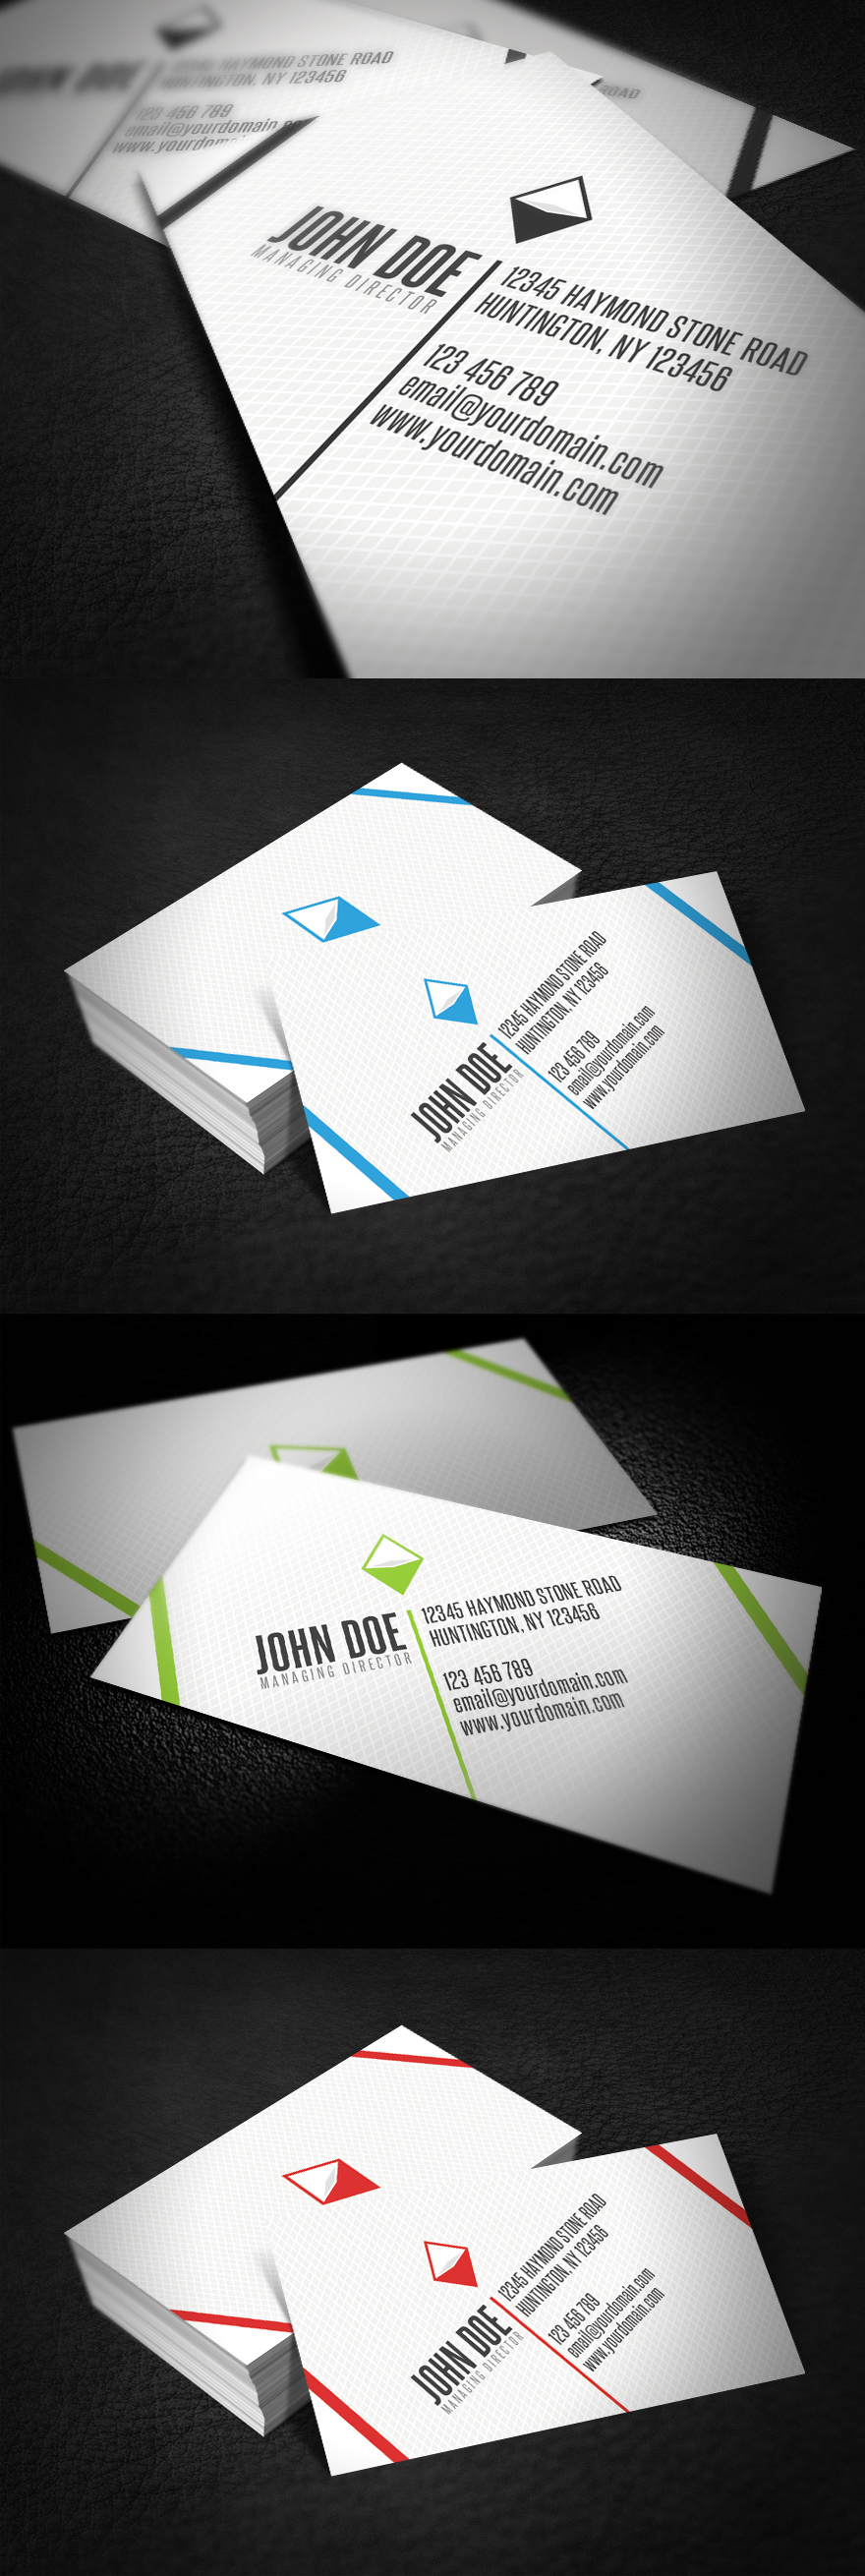 Diagonal Business Card